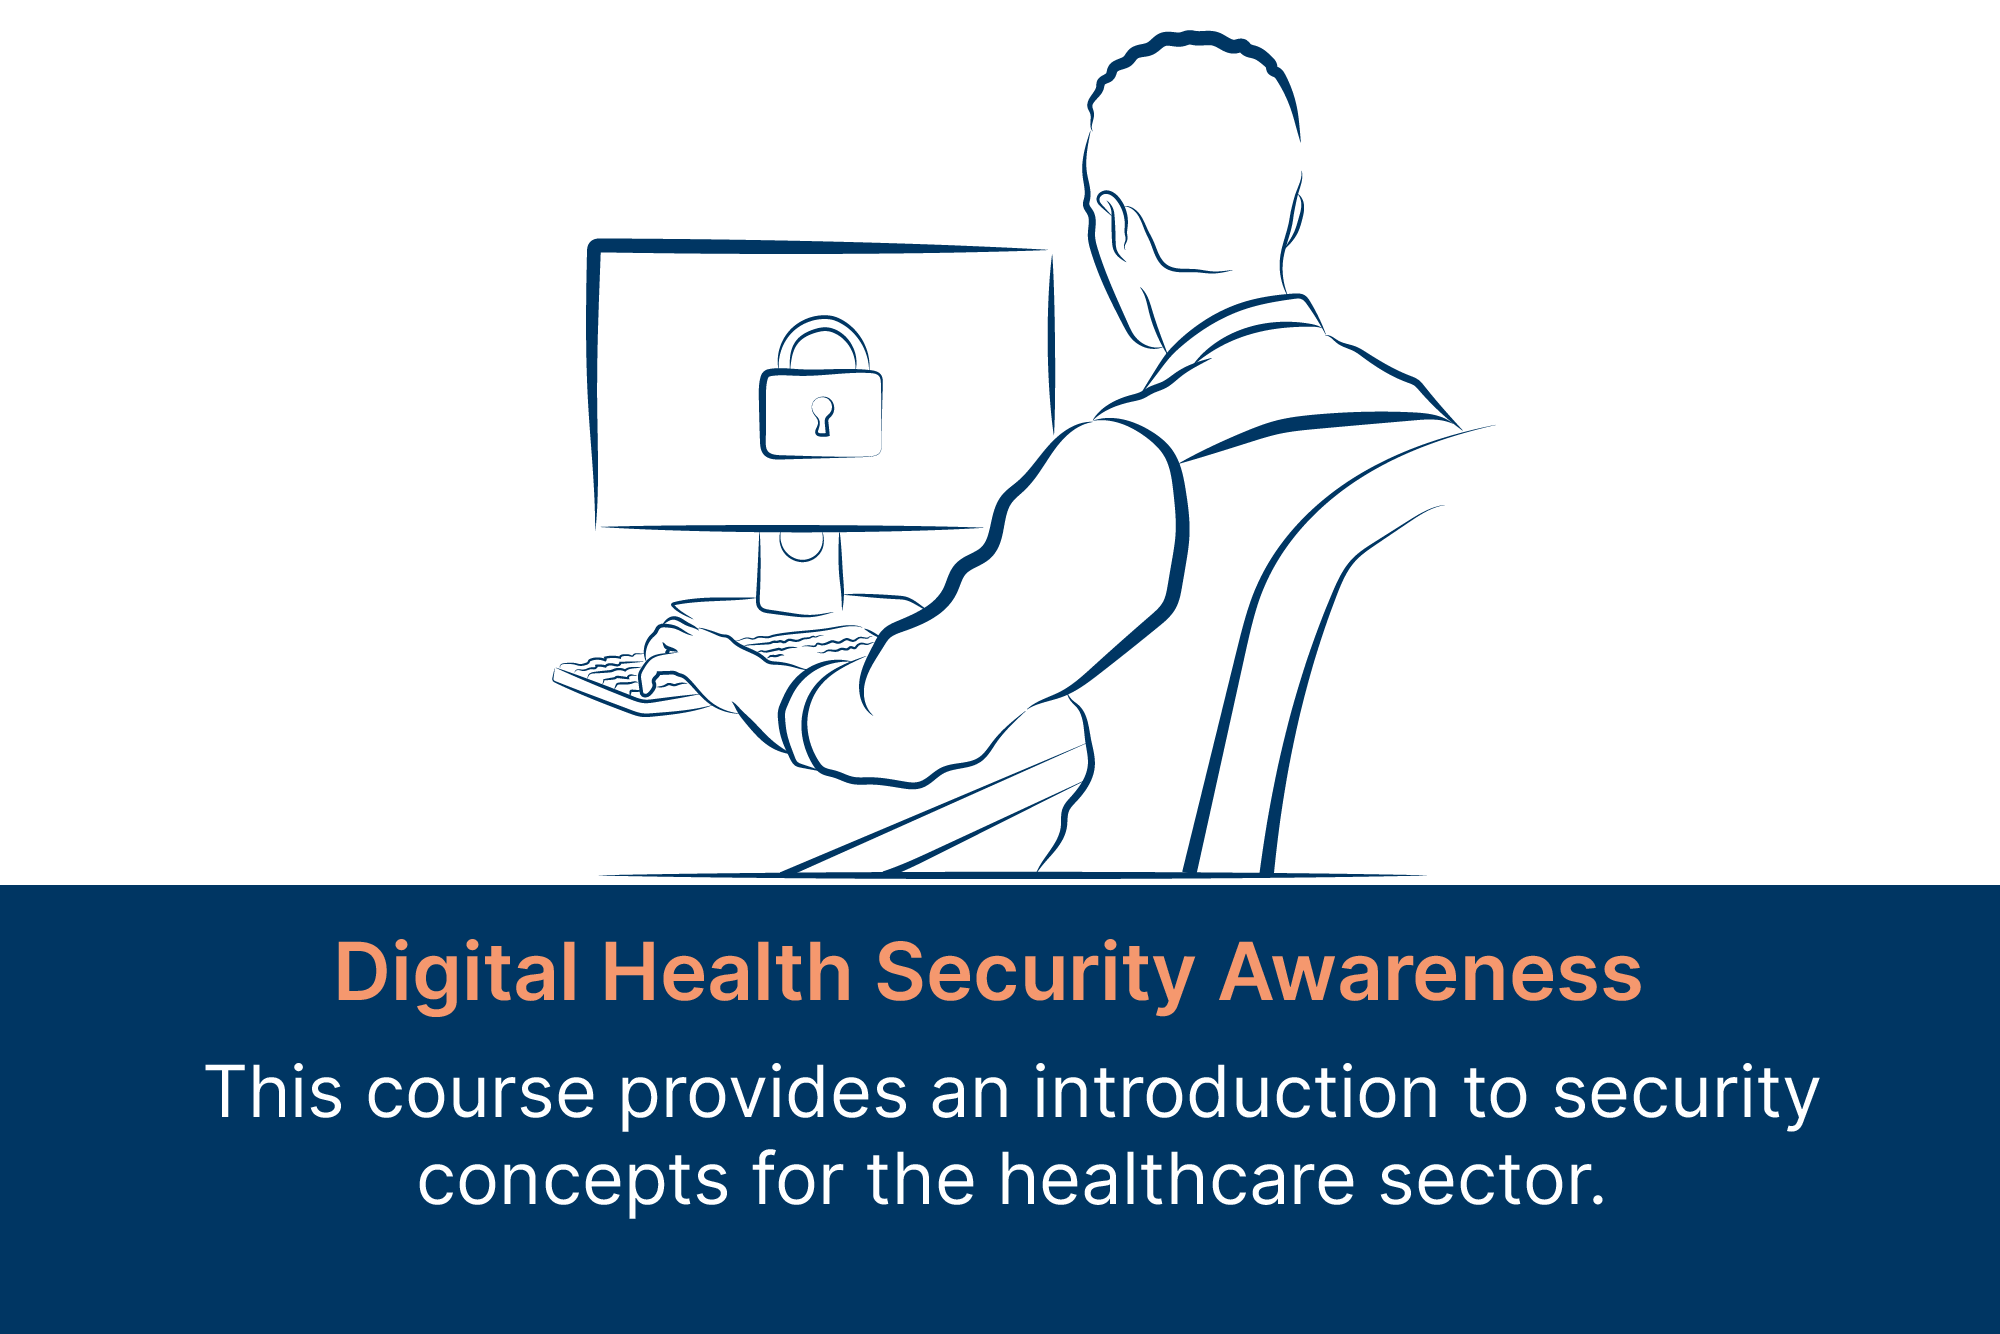 Digital Health Security Awareness